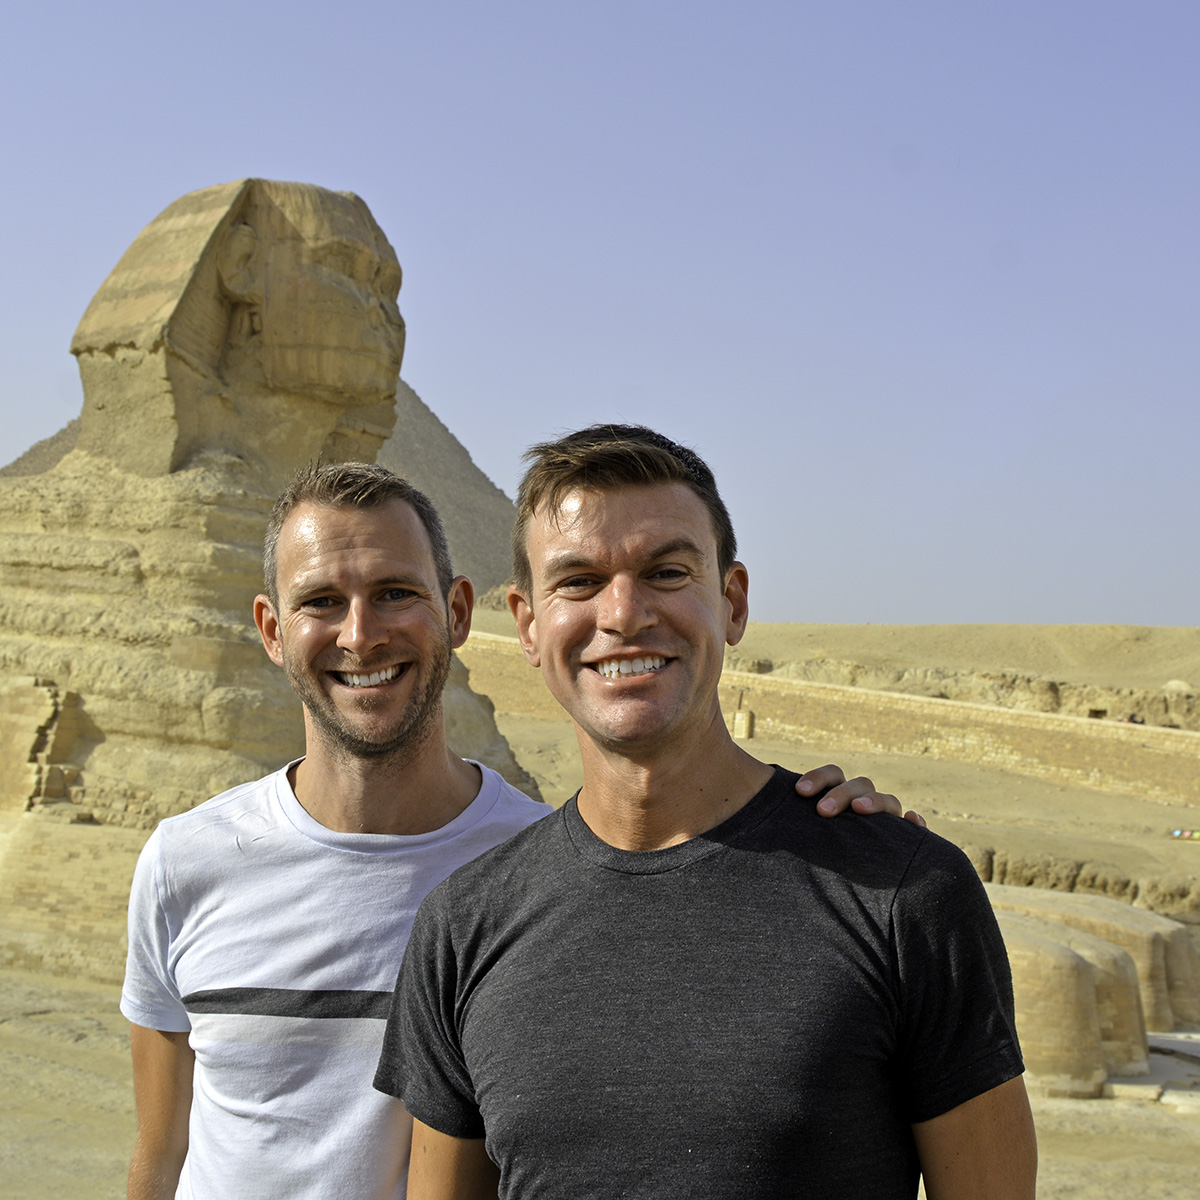 Scott Swiontek and John Line in front of the Sphinx in Giza, Cairo, Egypt.